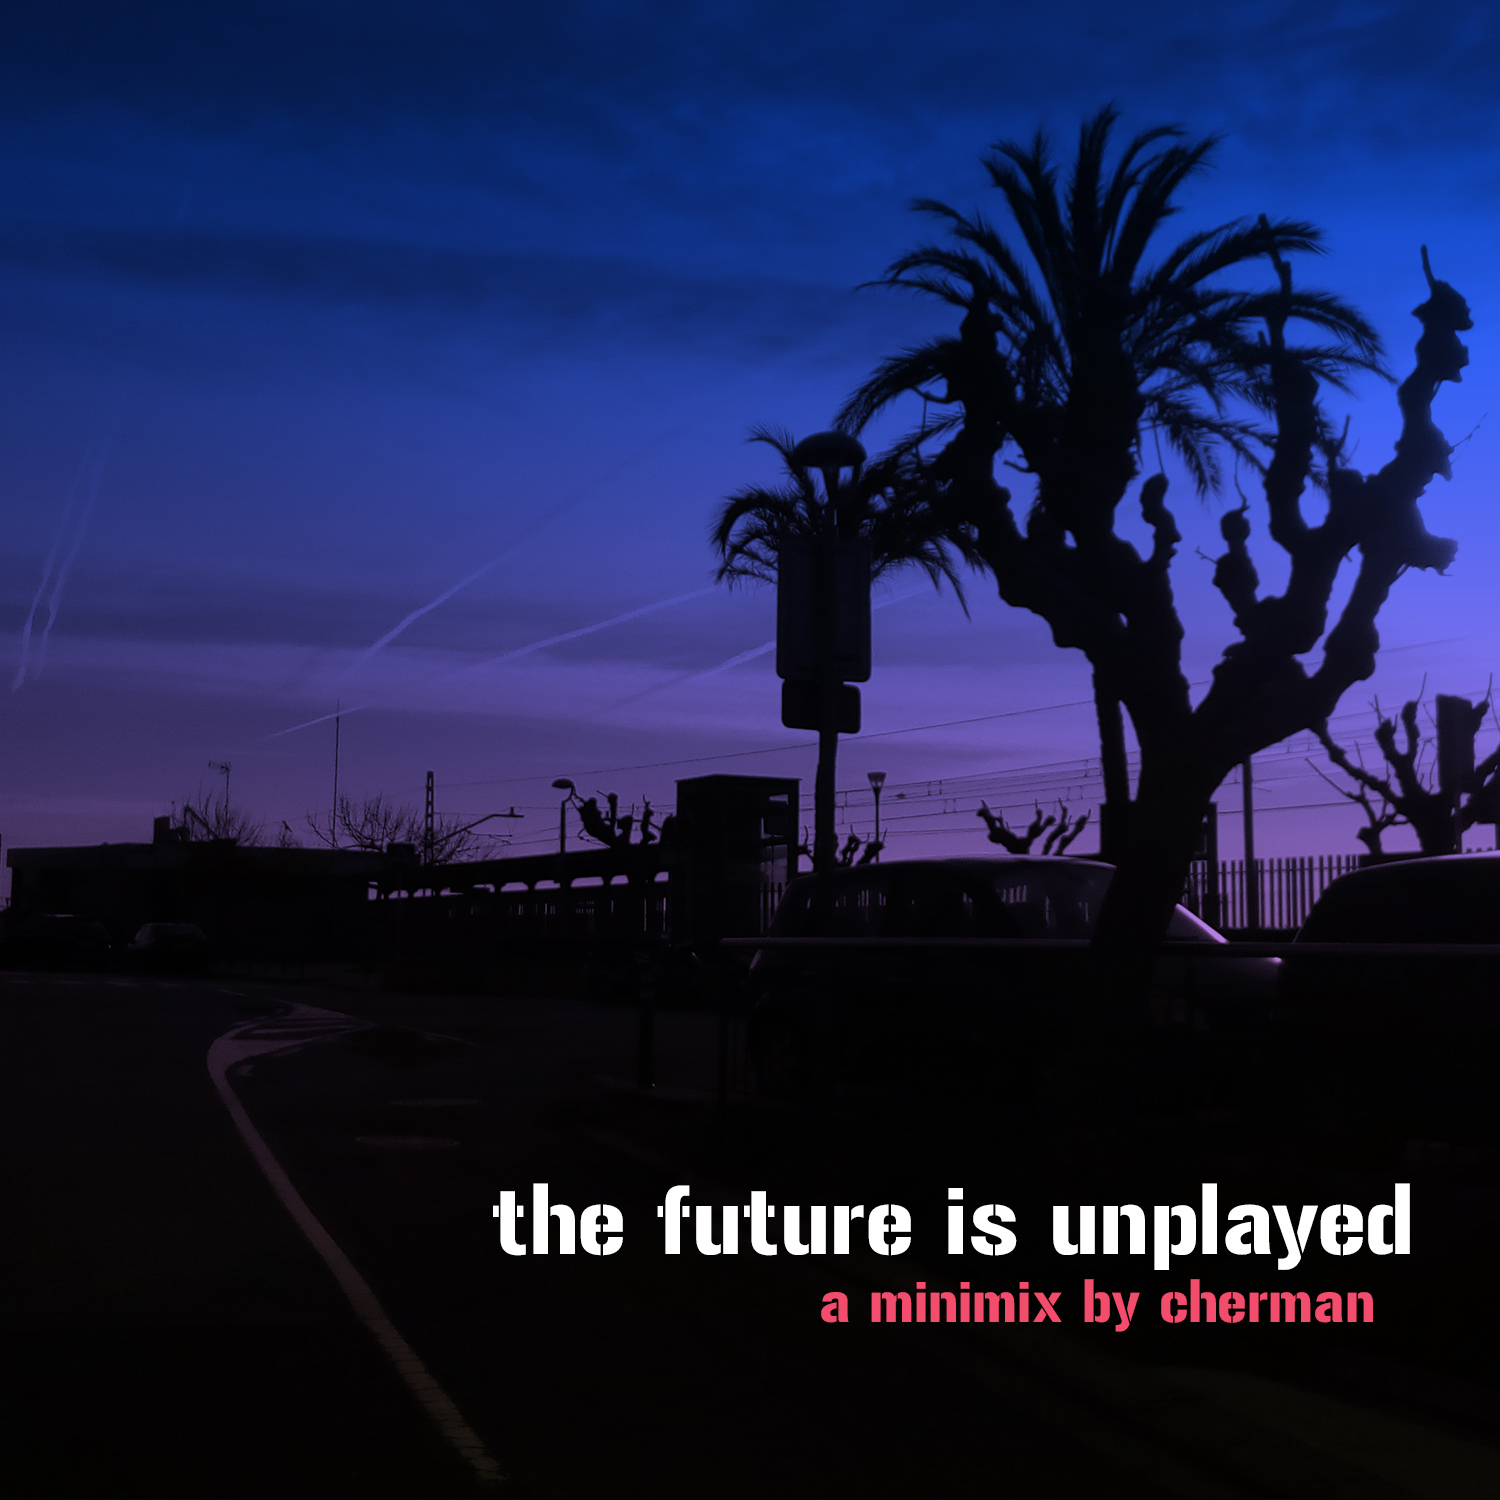 The Future is Unplayed (minimix) · 2017